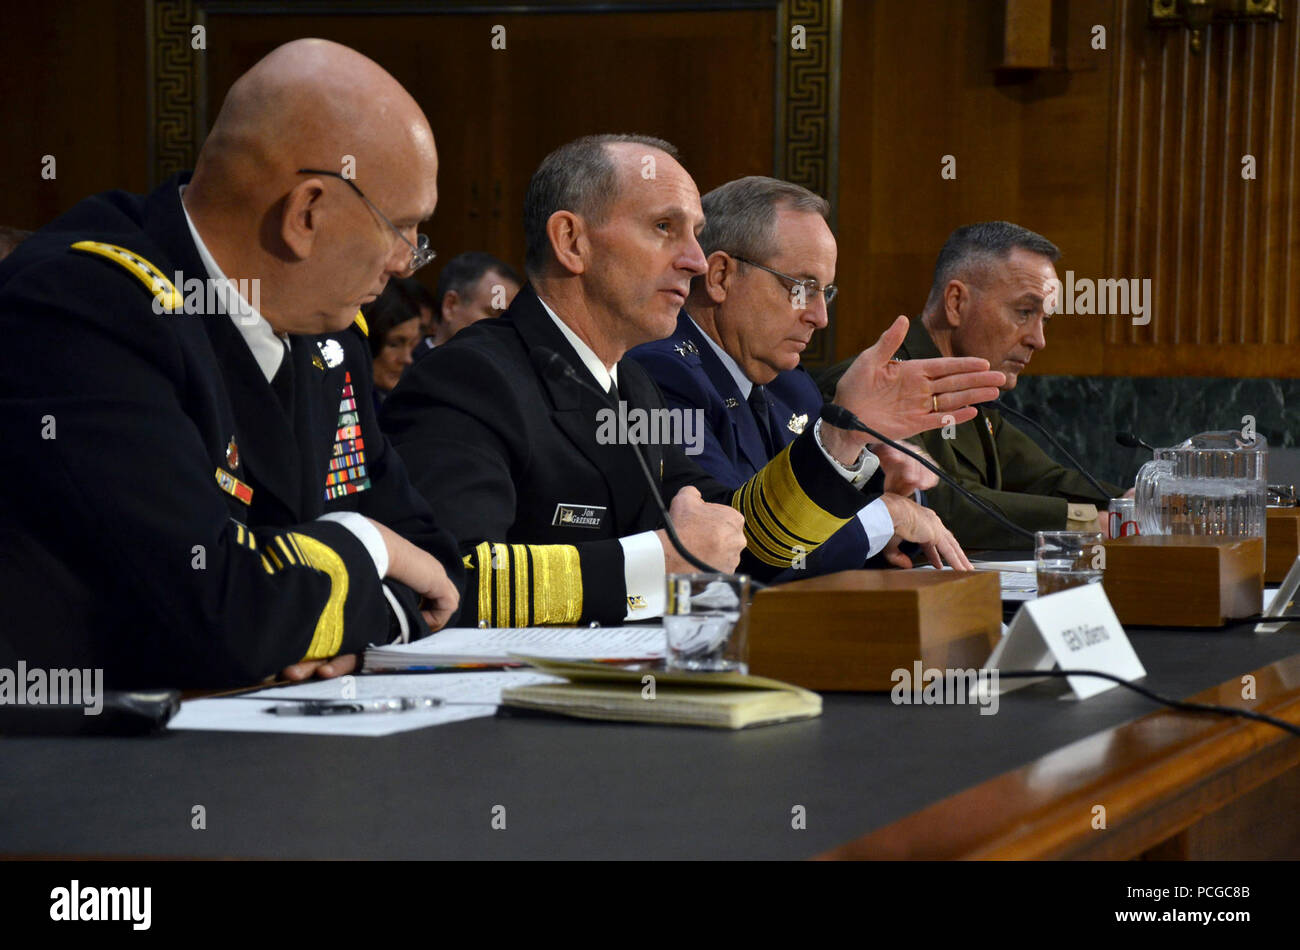 WASHINGTON (Jan. 28, 2015) Chief of Naval Operations (CNO) Adm. Jonathan Greenert, center left, testifies before the Senate Armed Services Committee. Greenert, along with other service chiefs, Chief of Staff of the Army Gen. Raymond T. Odierno, left; Chief of Staff of the Air Force Gen. Mark A. Welsh III, center right; and Commandant of the Marine Corps Gen. Joseph F. Dunford, Jr., testified on the impact of the Budget Control Act of 2011 and sequestration on national security. Stock Photo